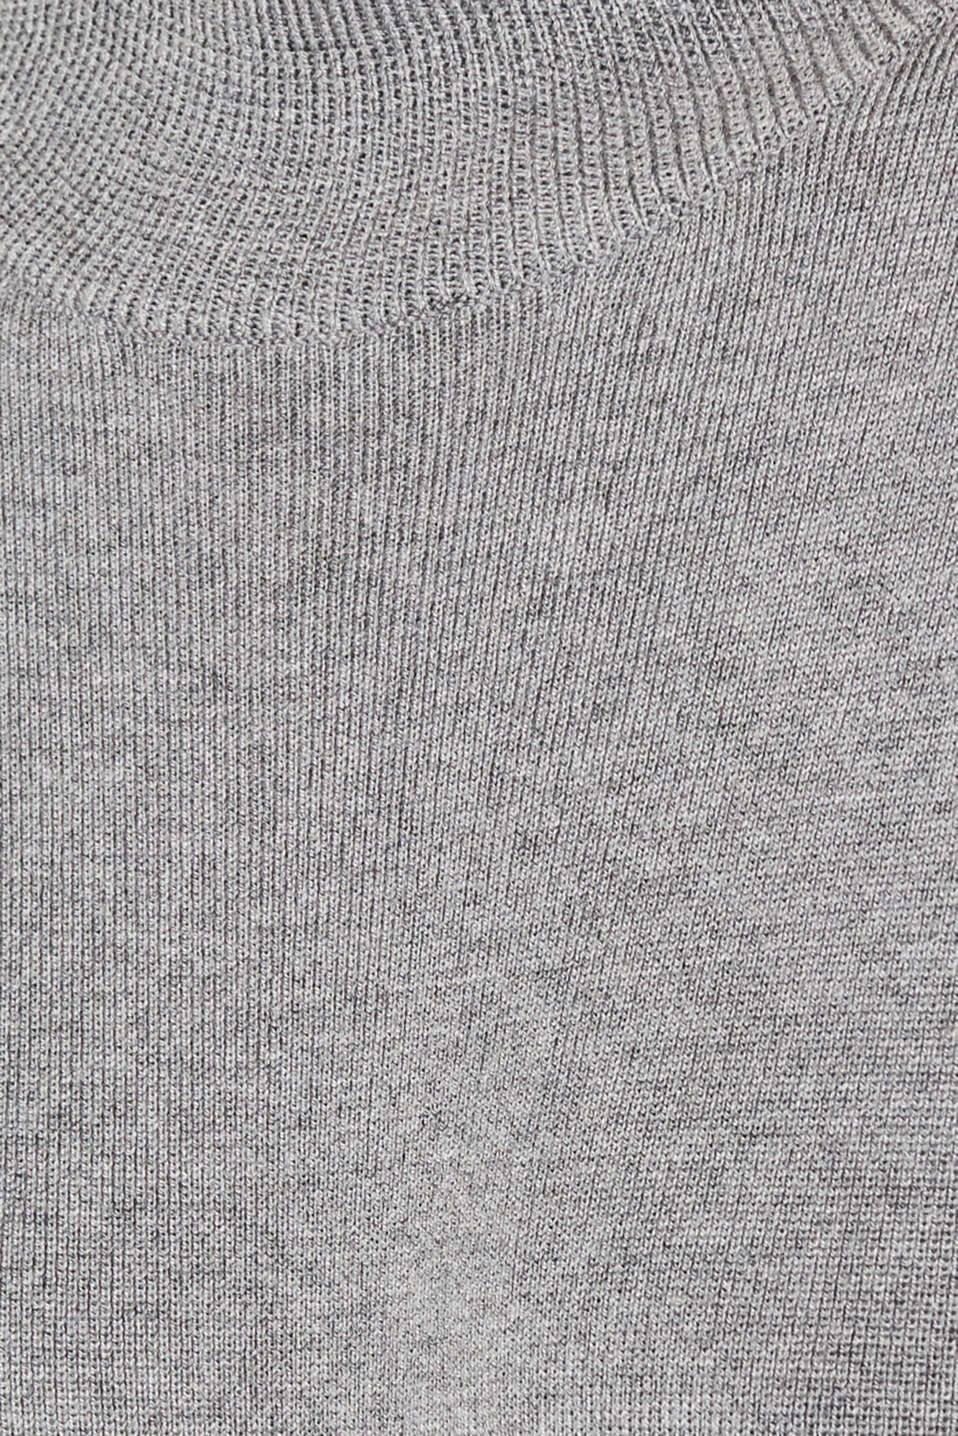 Dress made of a fine knit, recycled, GUNMETAL 5, detail image number 4